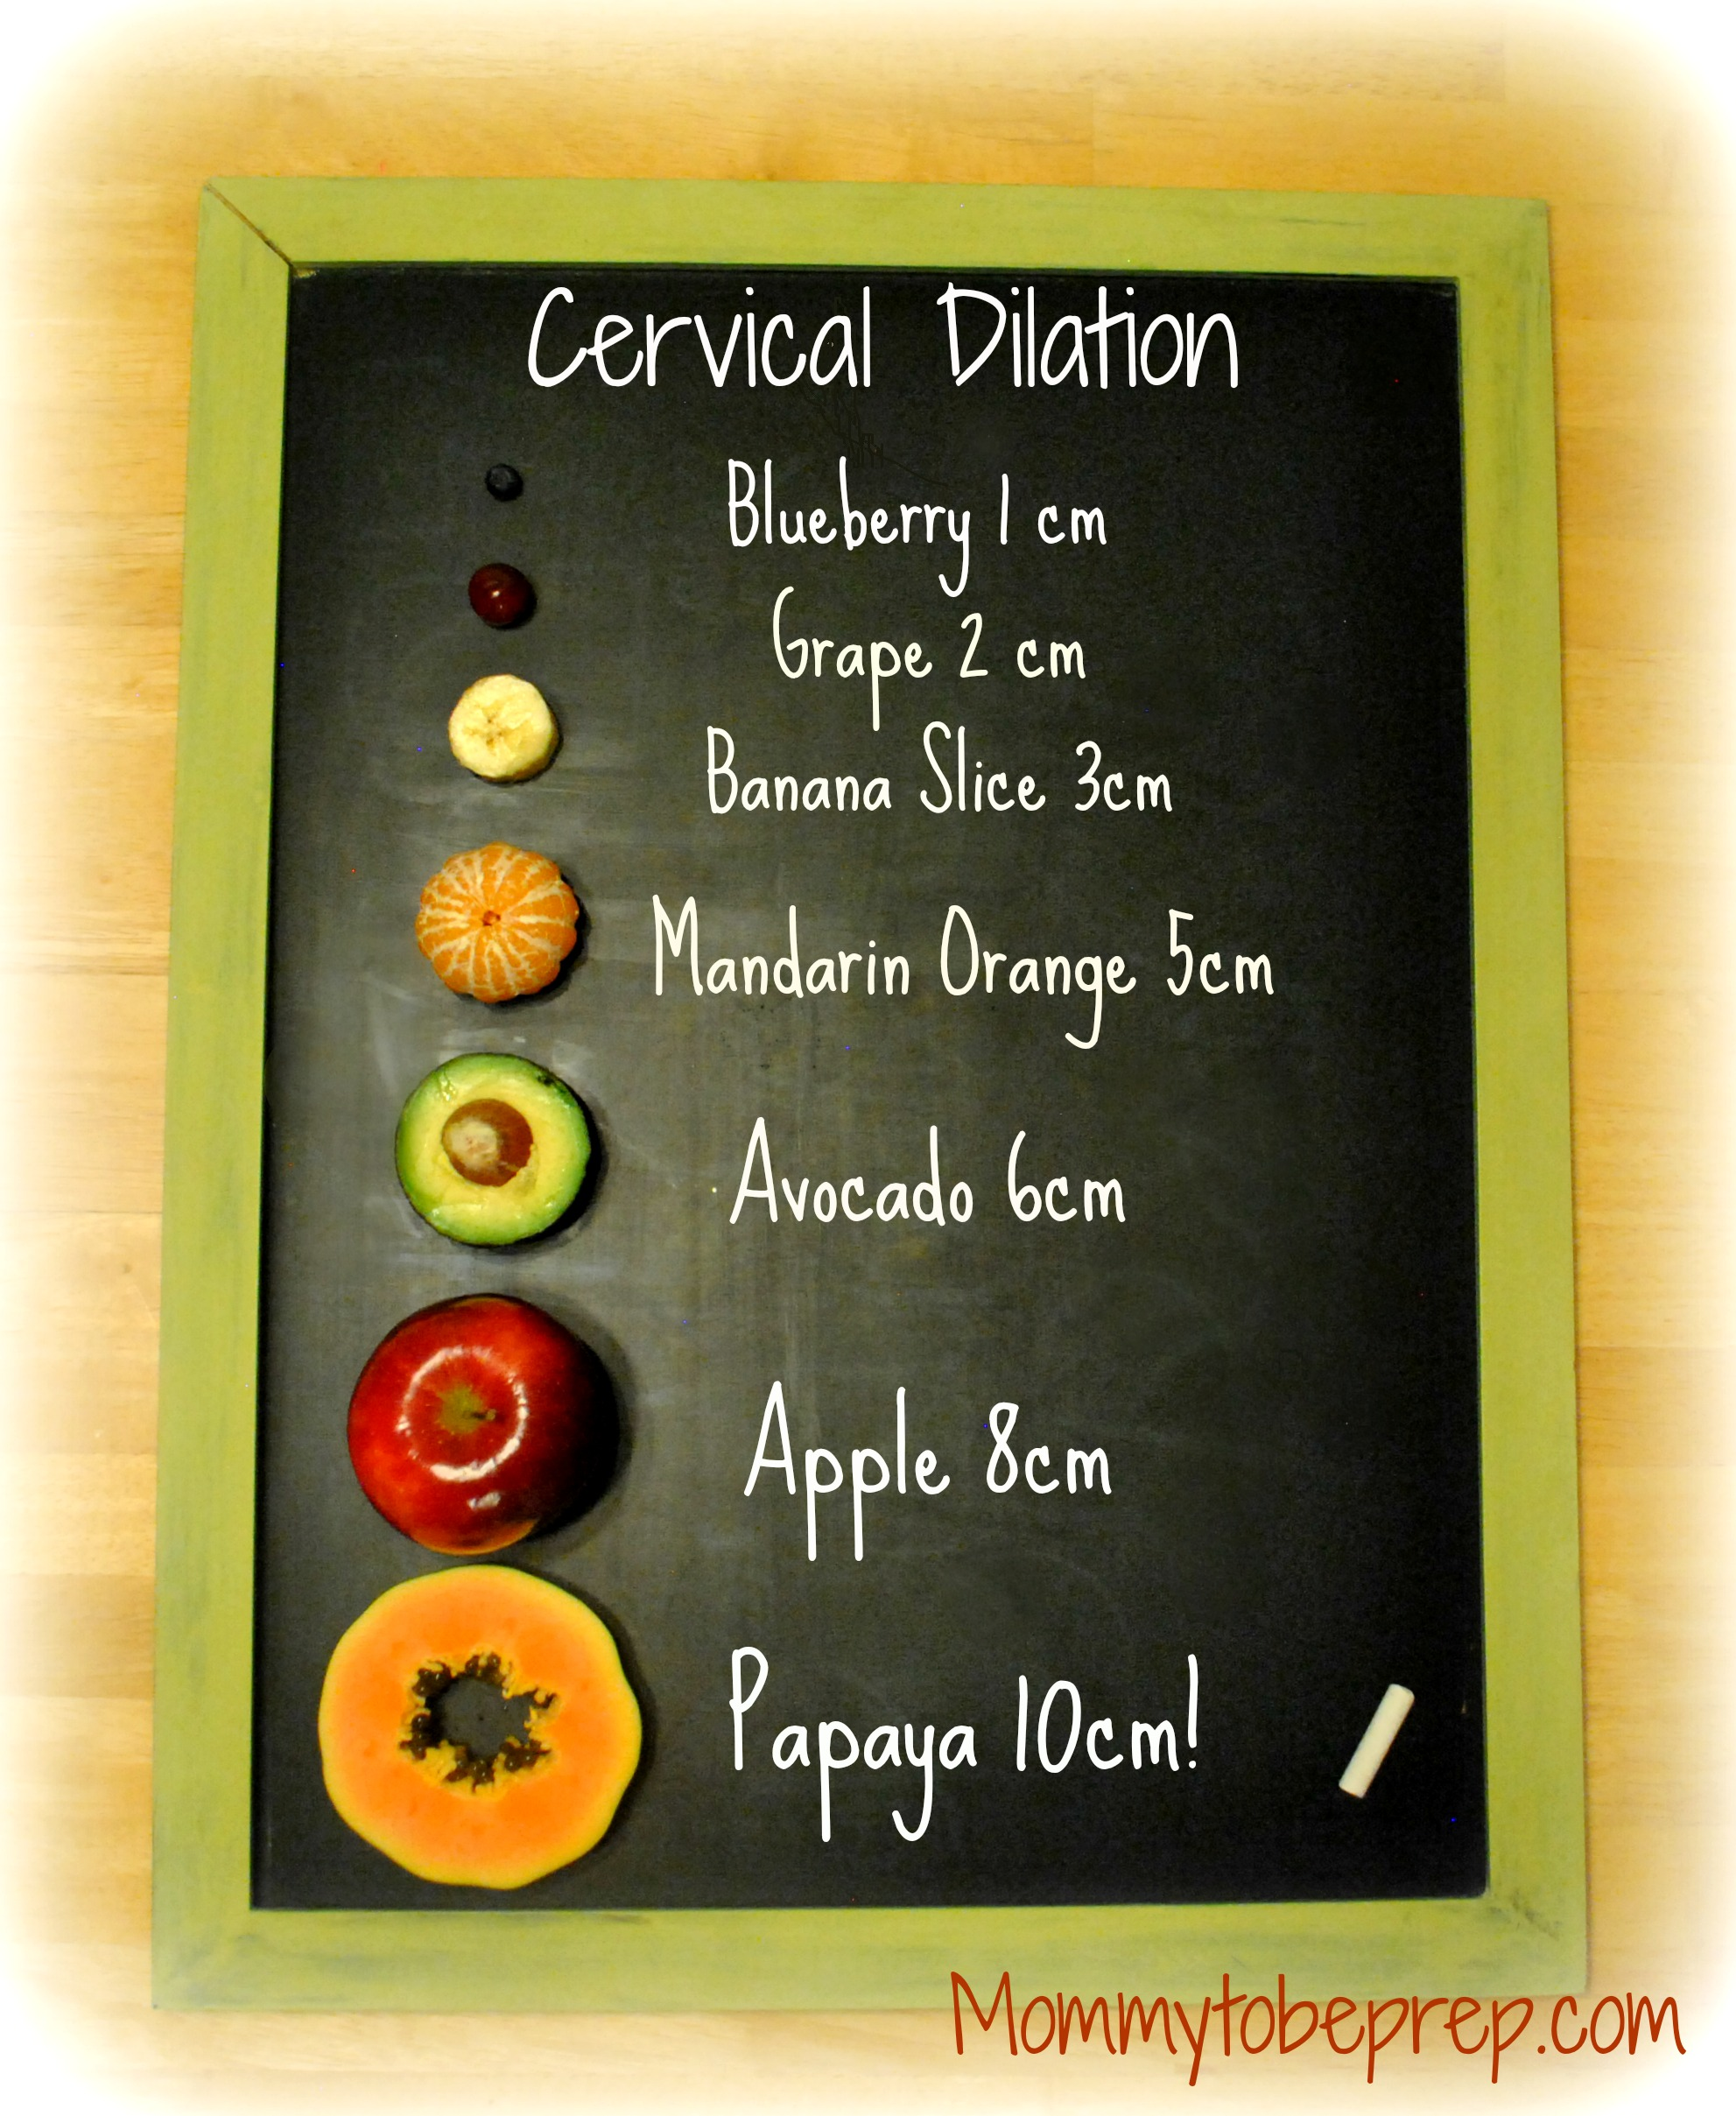 Cervical Dilation & Effacement with a Fruity Theme